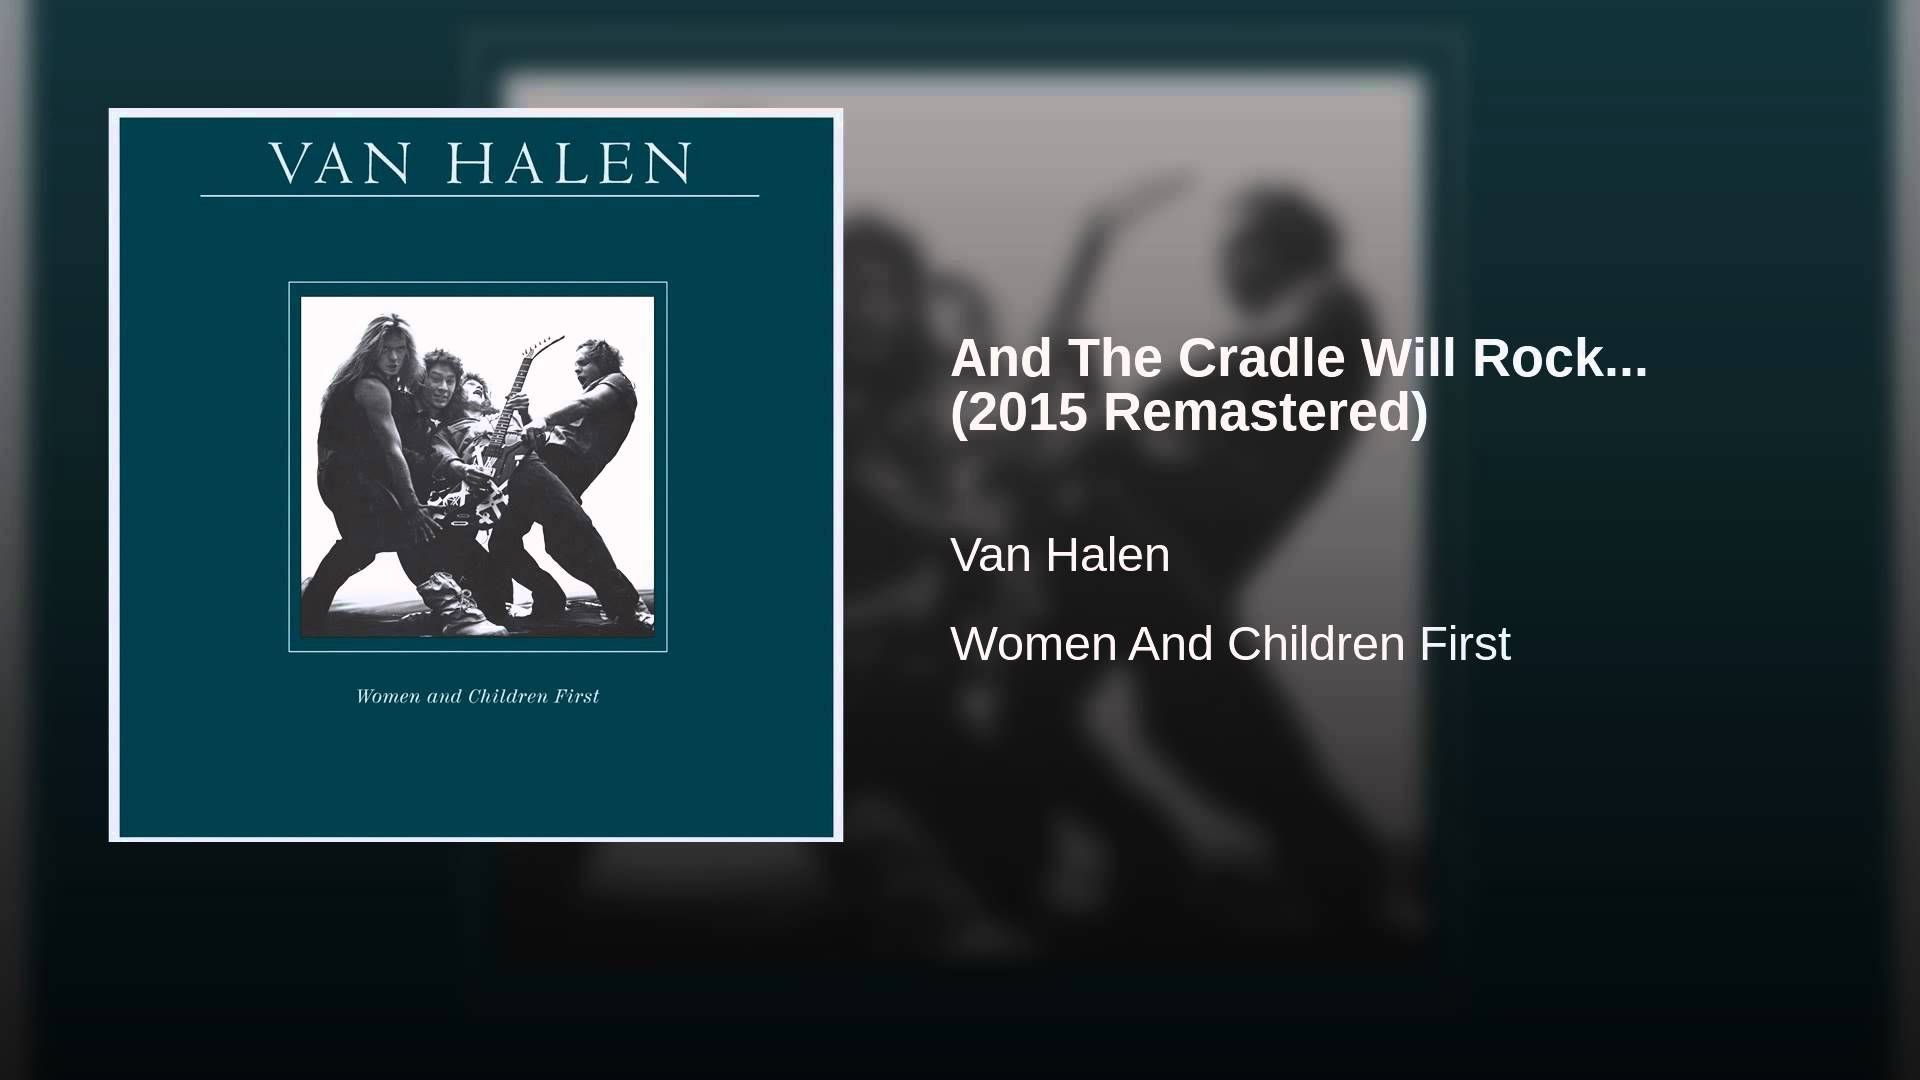 And The Cradle Will Rock 2015 Remastered Youtube Van Halen Rock Songs Rhymes